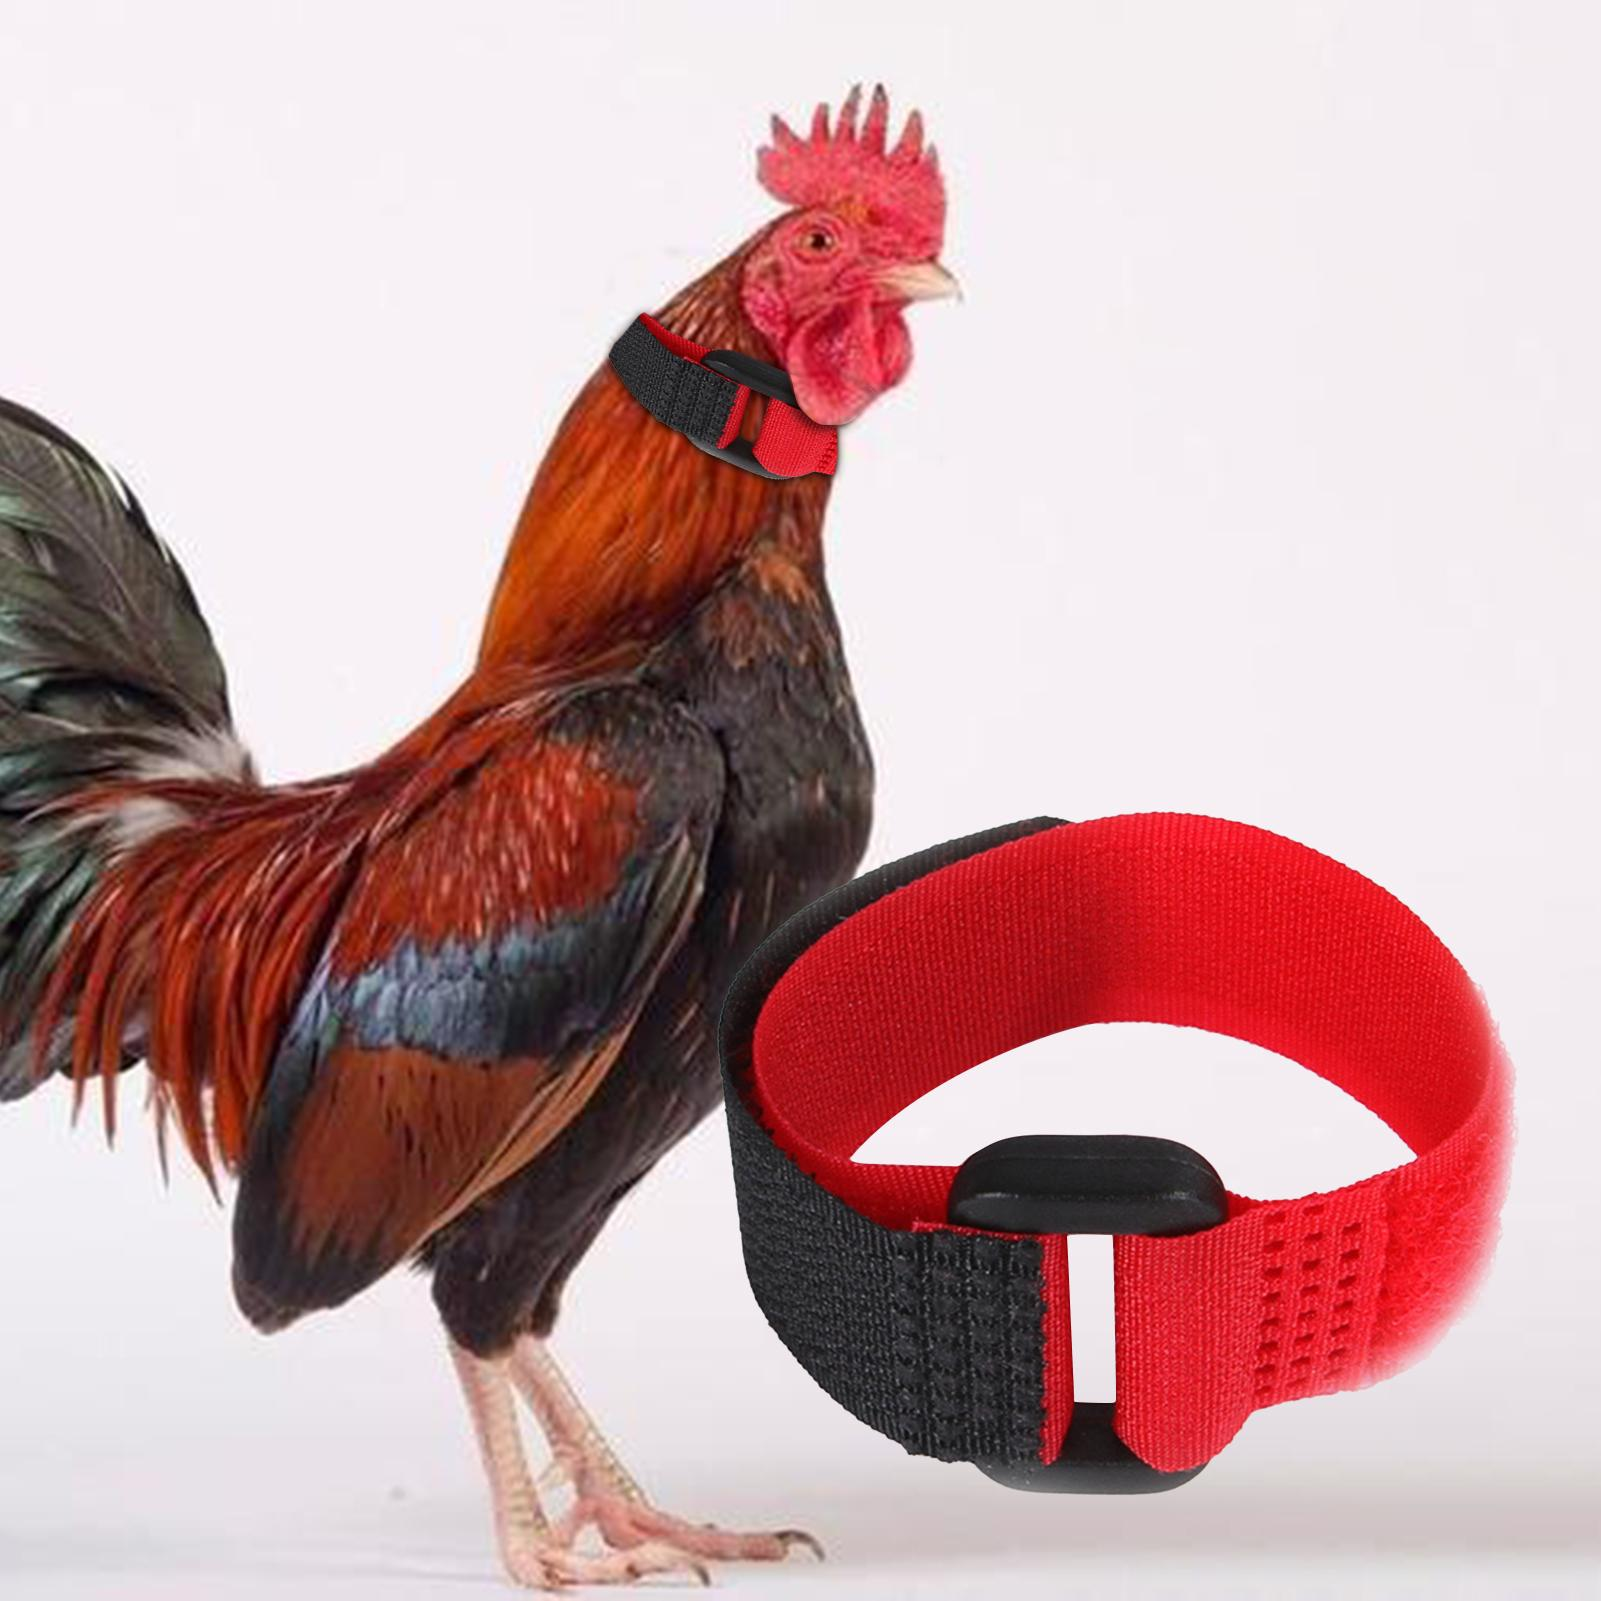 Collar Chicken for Ducks Rooster No-Crow Neckband Noise-Free 1pair Anti-Hook